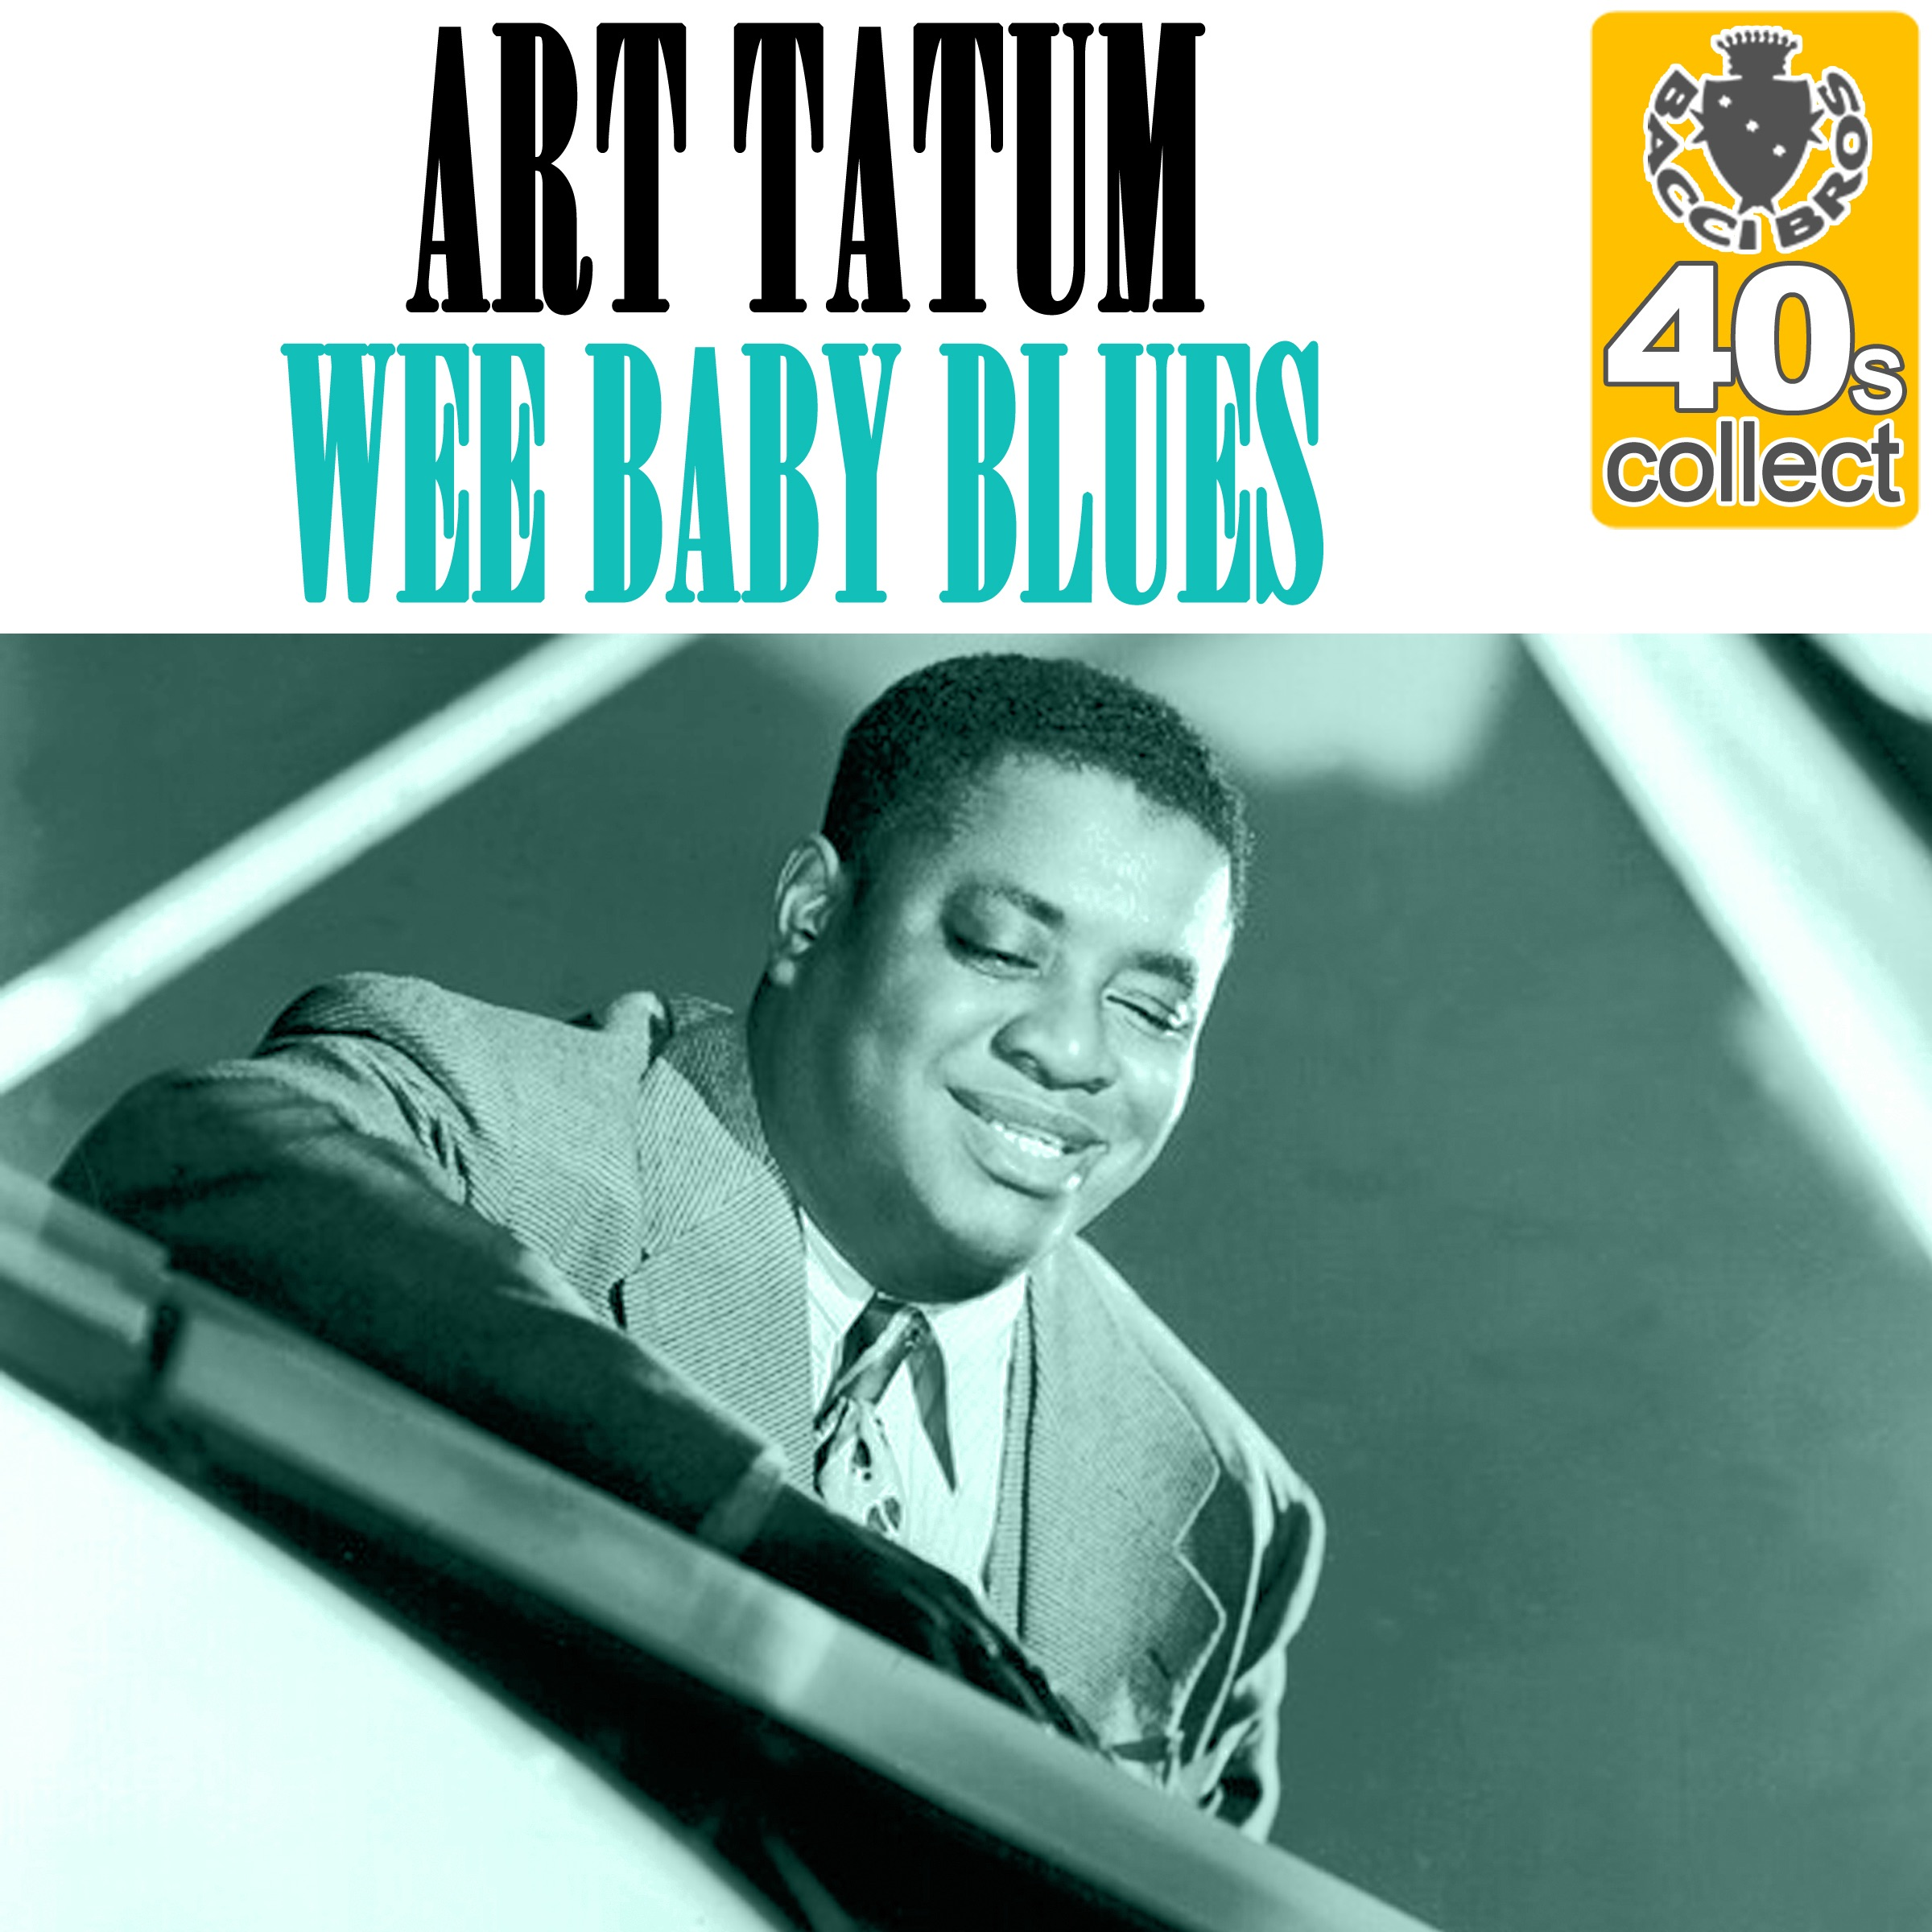 Wee Baby Blues (Remastered) - Single